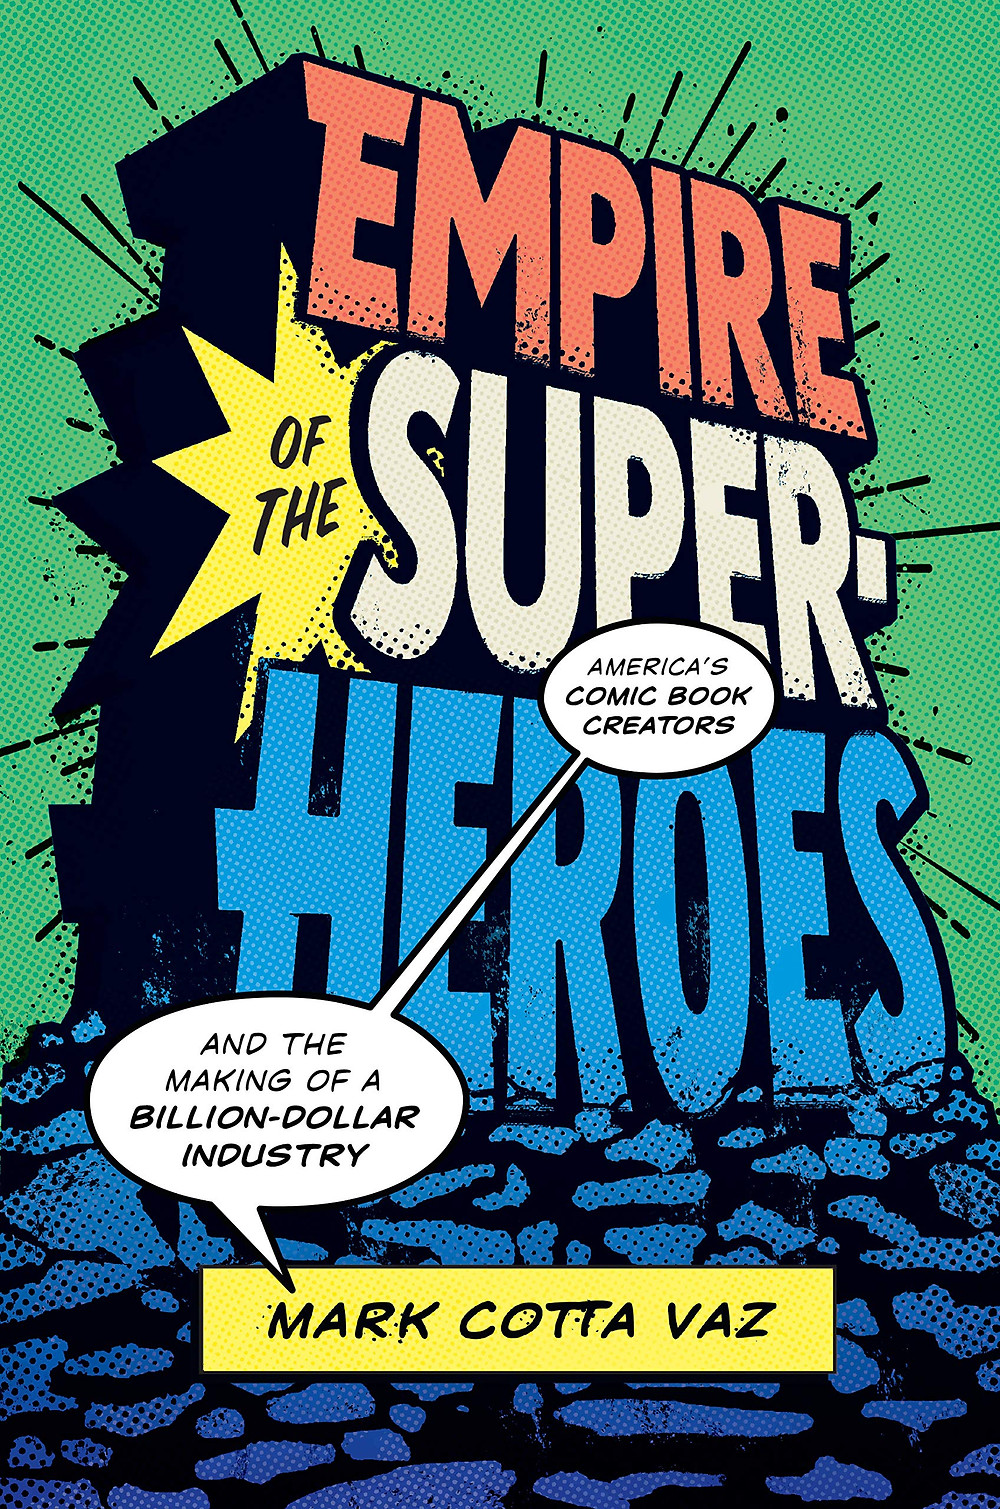 Next Week: Empire of the Super-Heroes by Mark Cotta Vaz